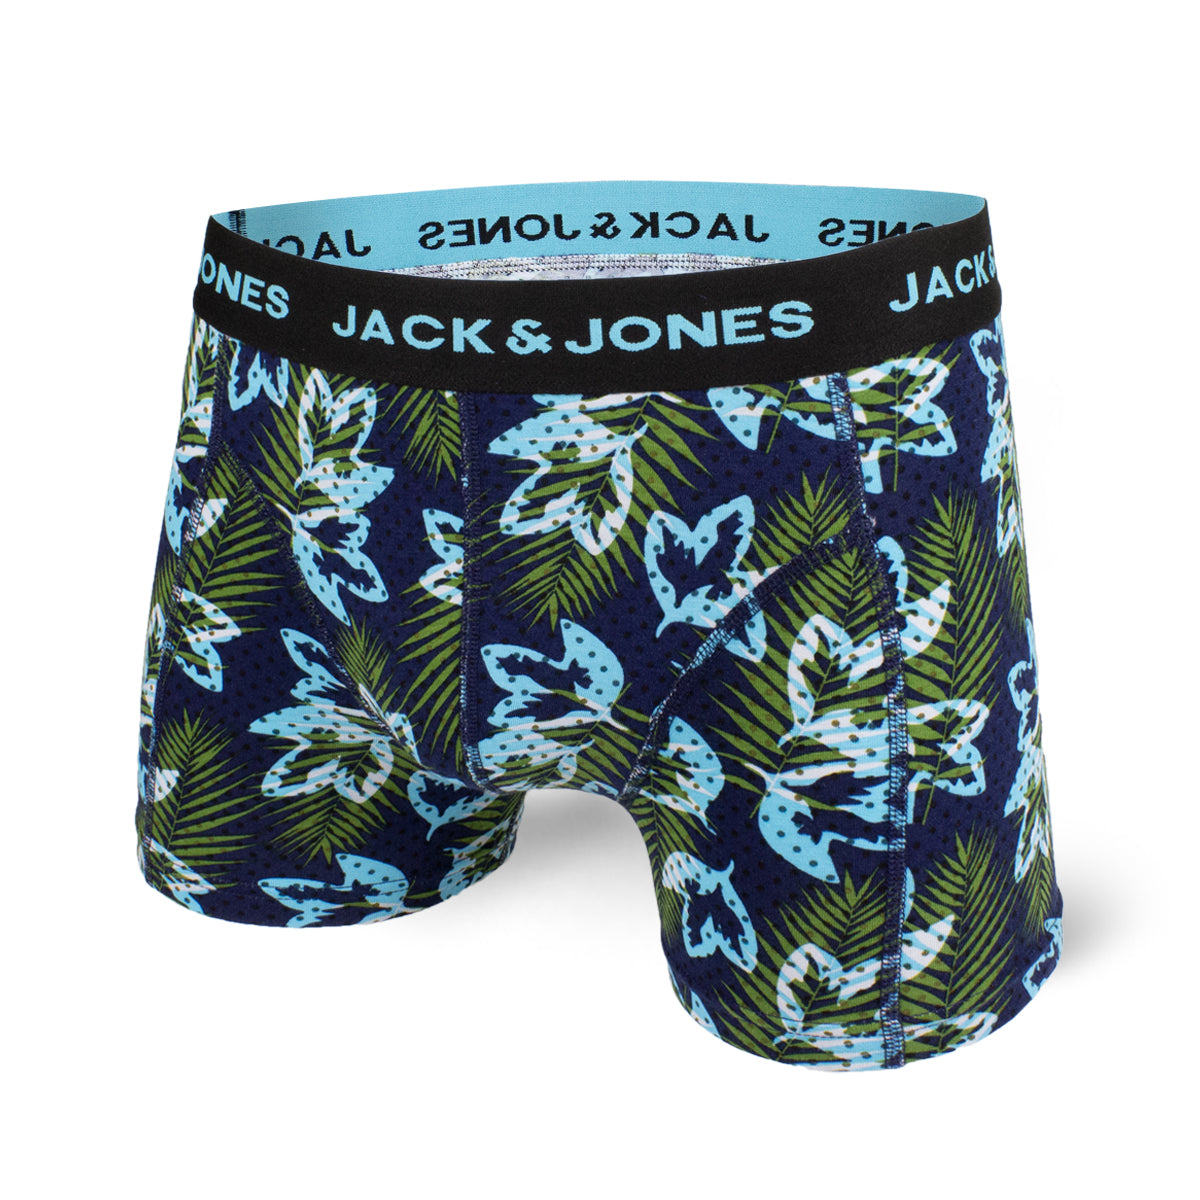 Boxer court Jack & Jones Leaf Limelight